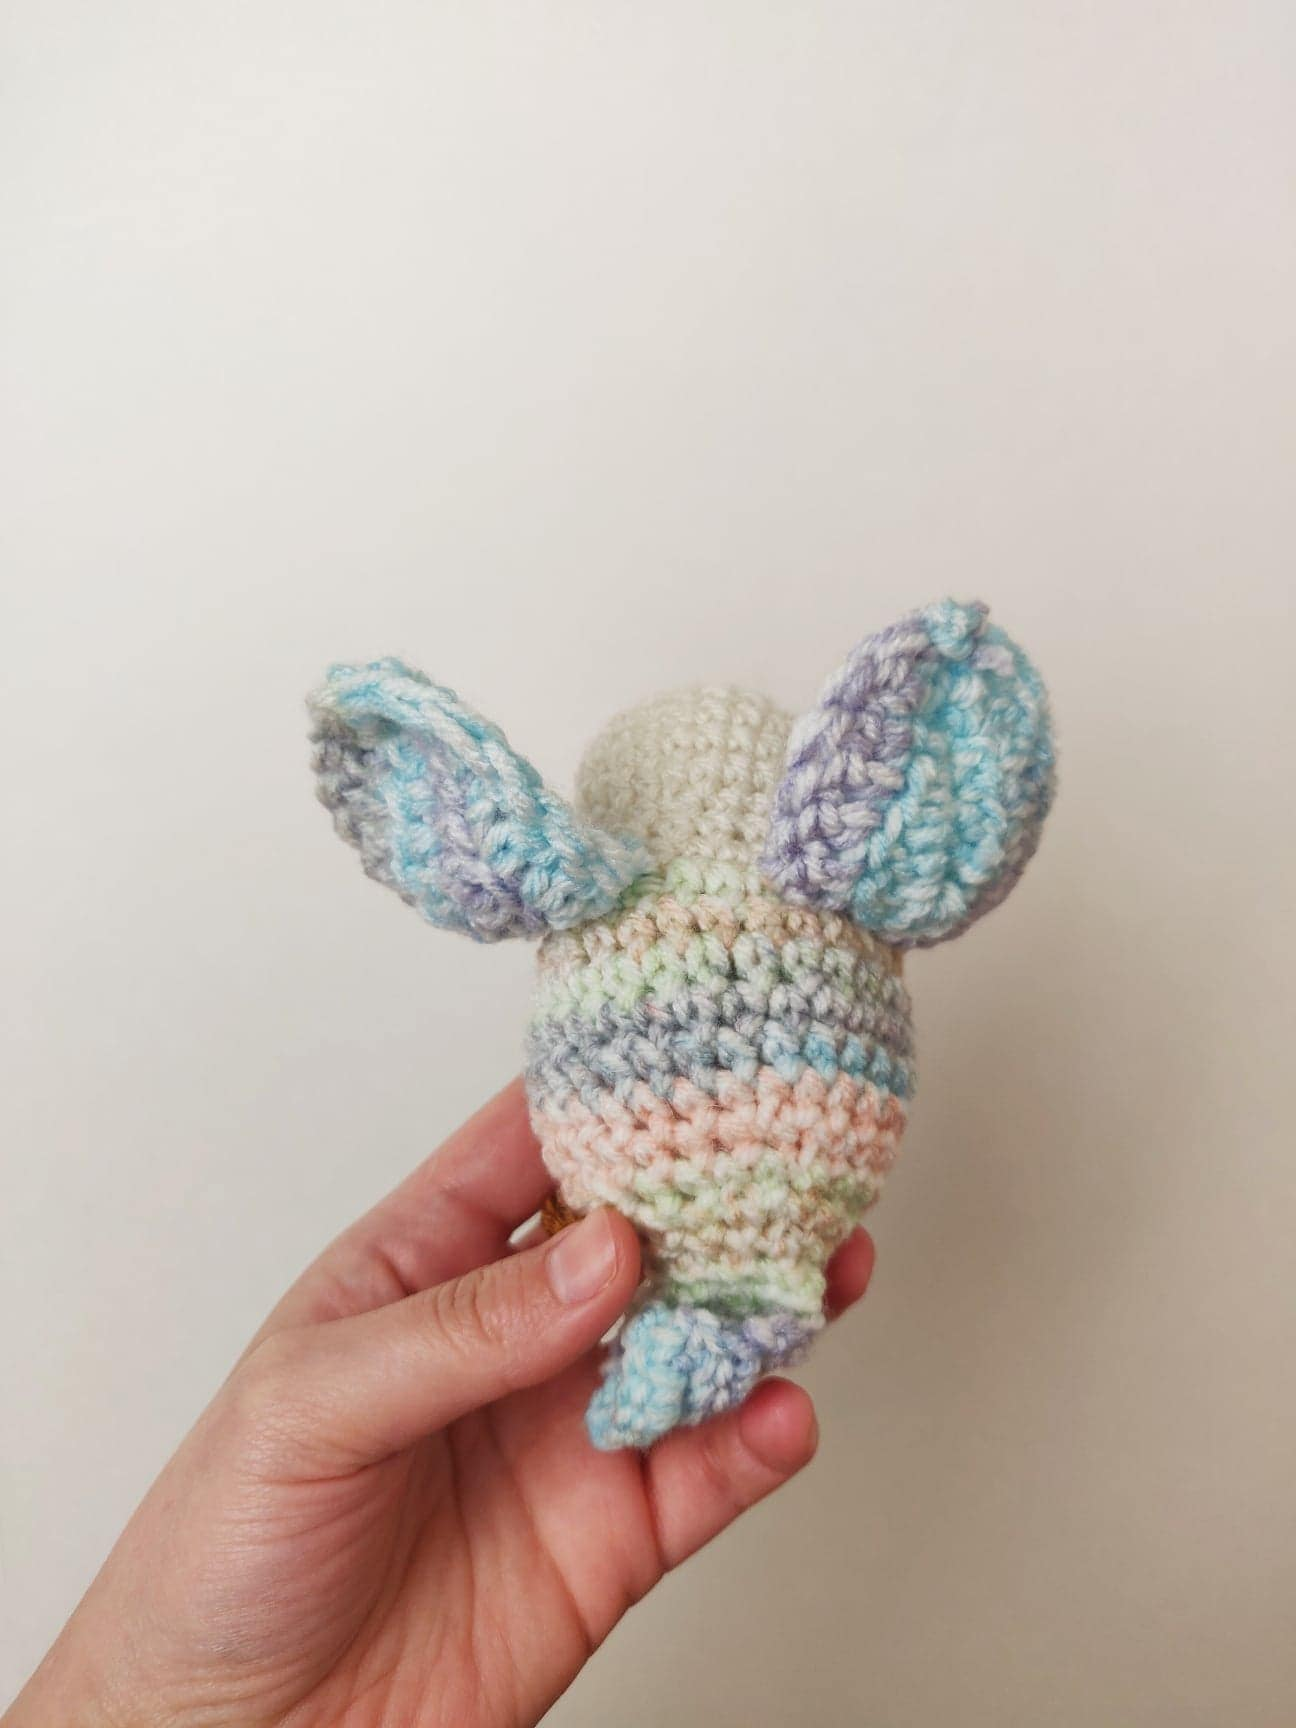 Crochet bird with wings up.